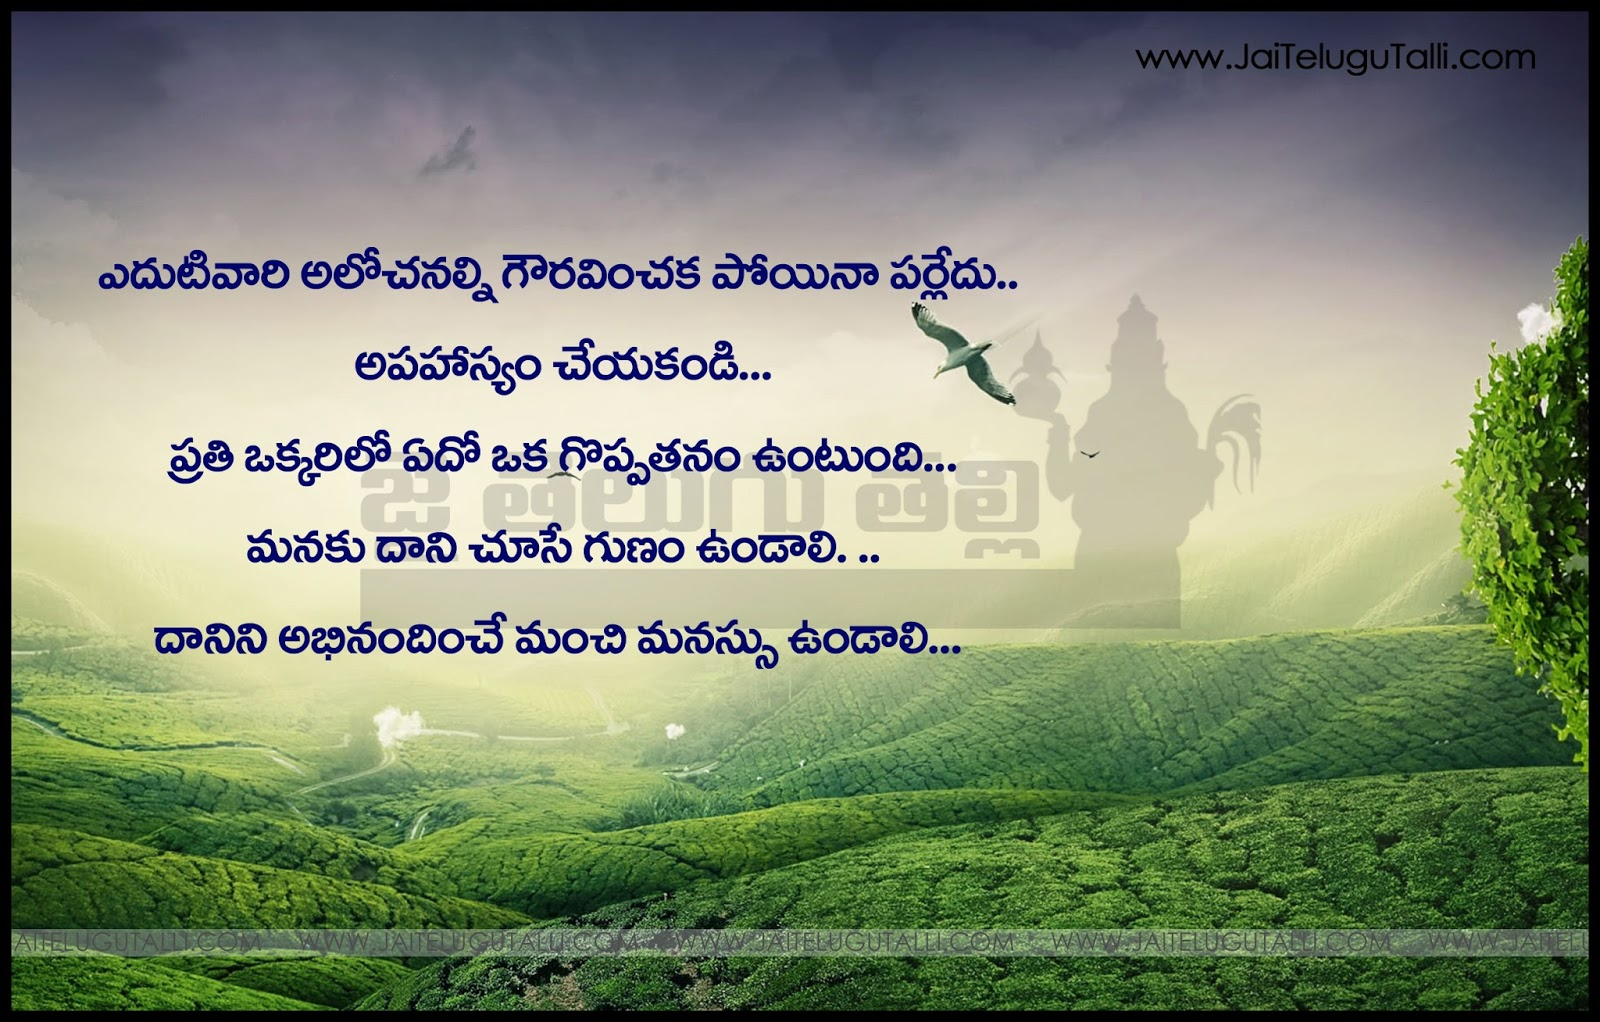 Best Life Motivational Quotes Telugu Quotes Best Feelings And Syaings Inspiration Quotes In